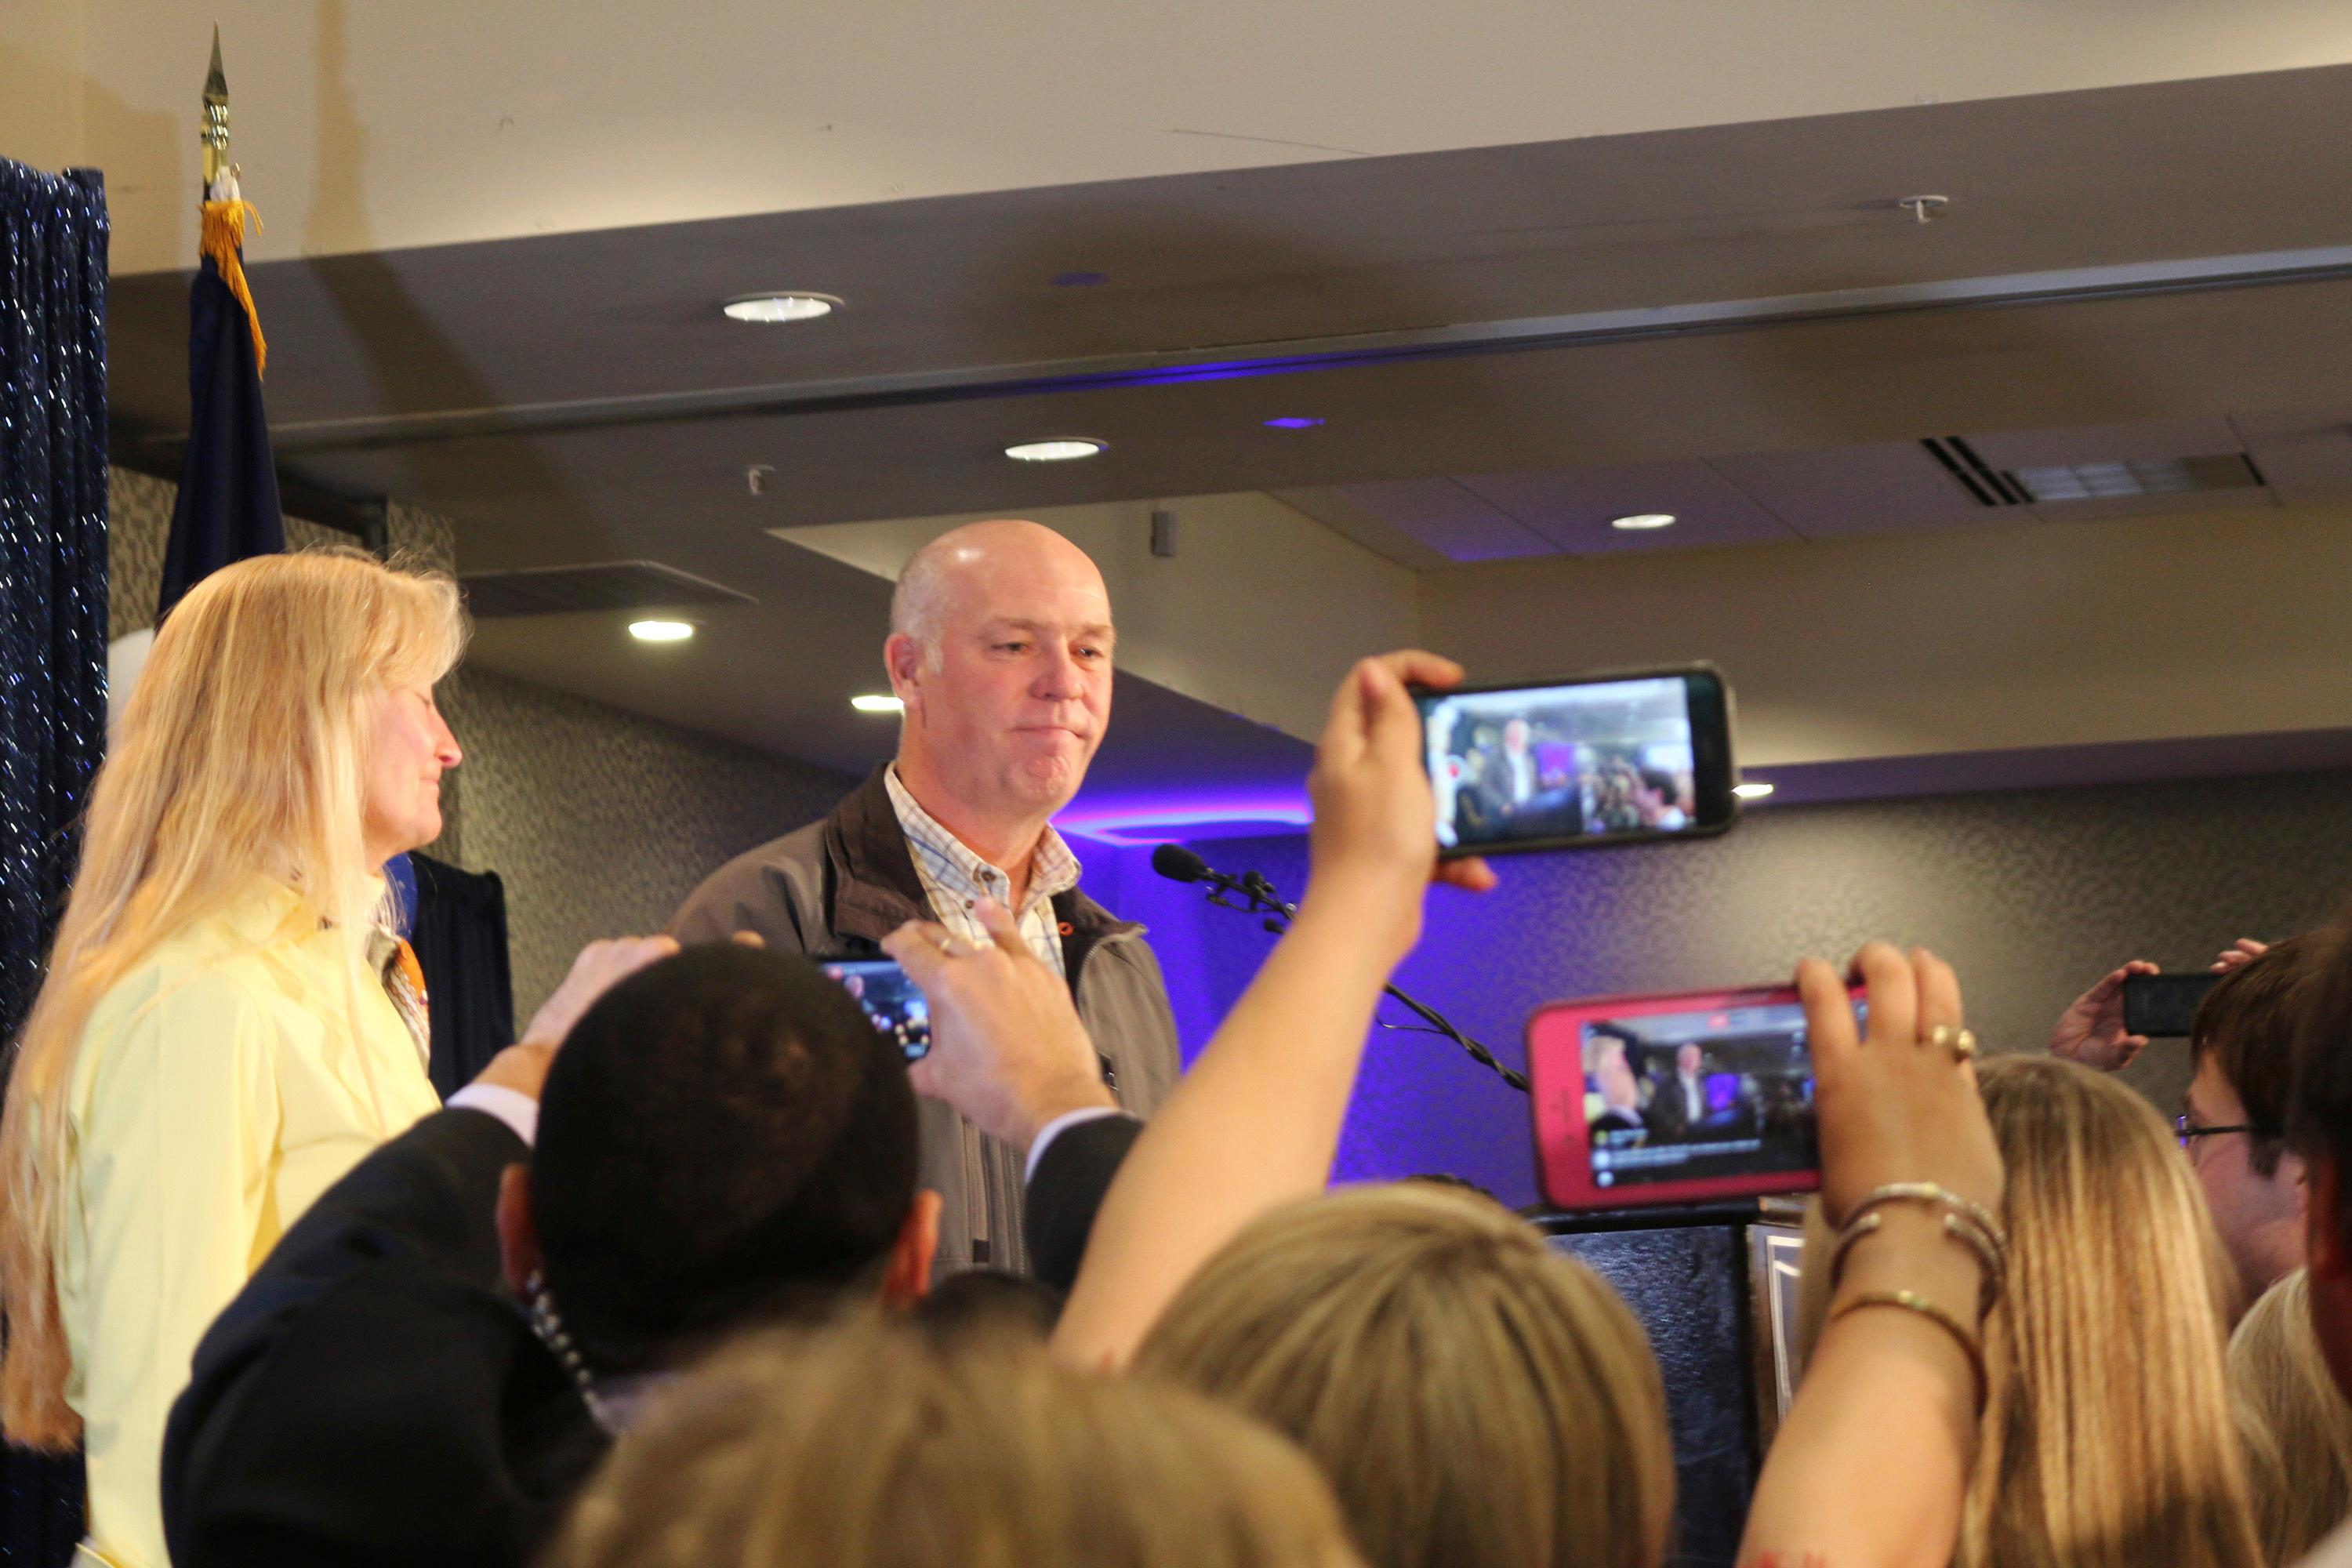 Republican Greg Gianforte greets supporters at a hotel ballroom after winning Montana's sole congressional seat, Thursday, May 25, 2017, in Bozeman, Mont. In his speech, Gianforte apologized for a altercation at his campaign headquarters with a reporter on the eve of the special election. The altercation led to a misdemeanor assault citation. (AP Photo/Bobby Caina Calvan)